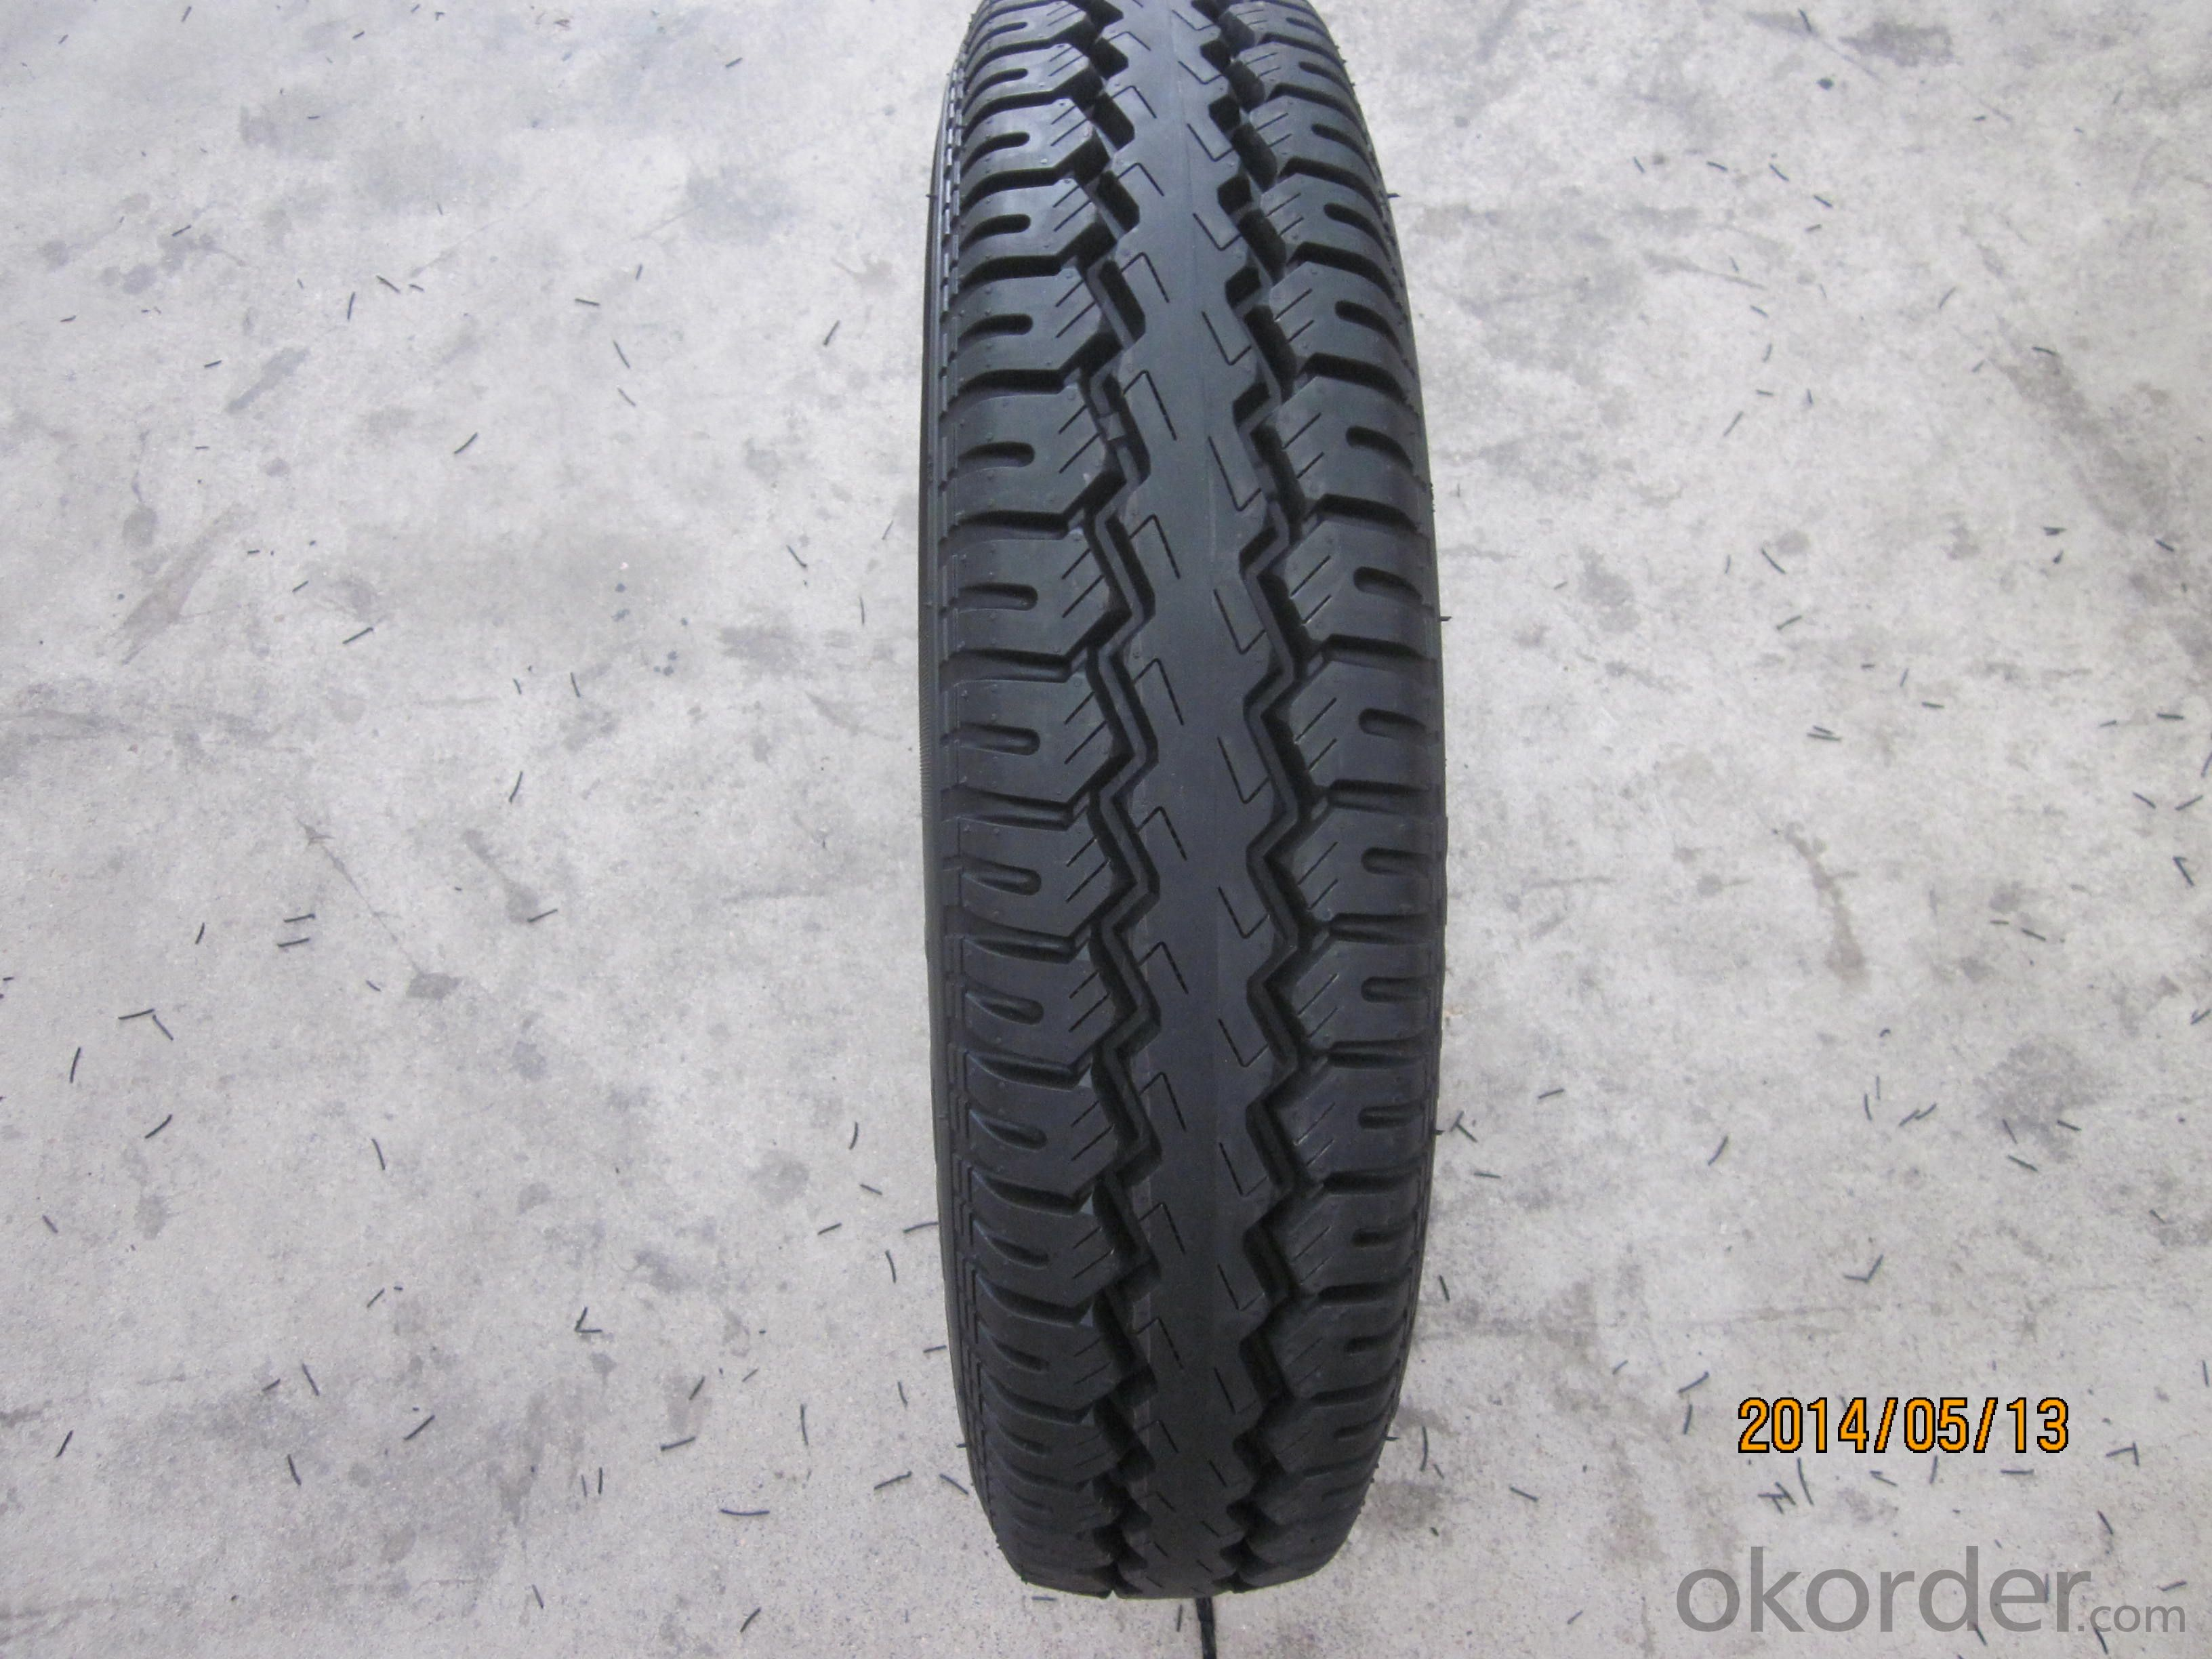 Passage Car Radial Tyre 500R12 LRP198